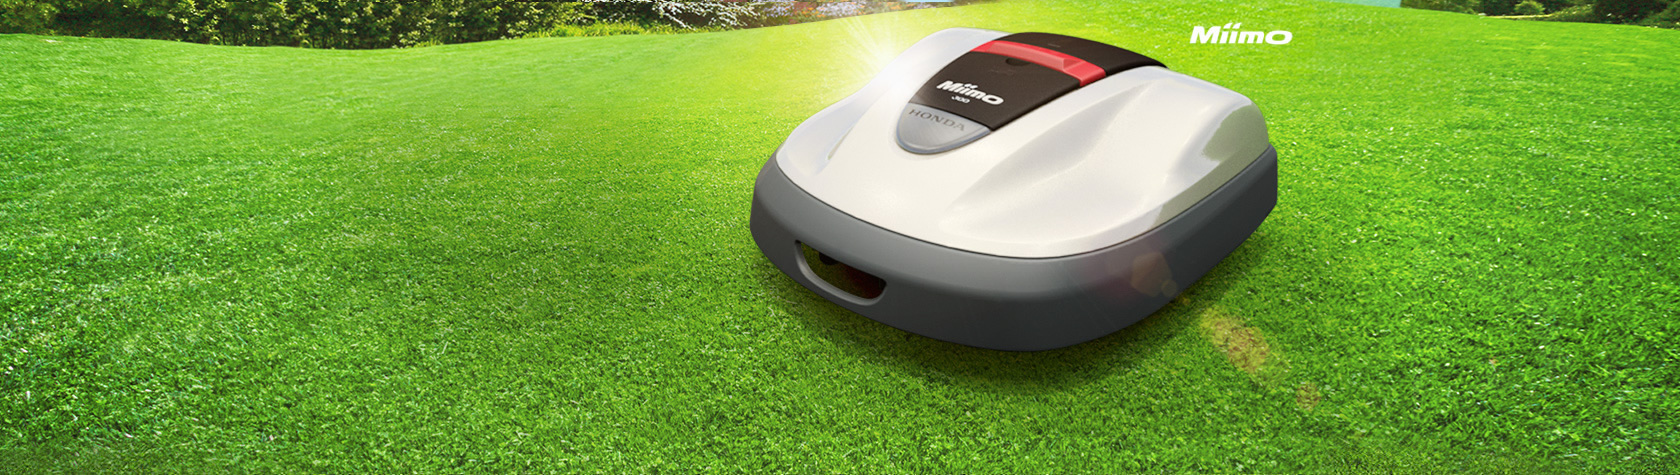 honda-miimo-the-robot-lawn-mower-that-does-everything-himself-video-84741_1